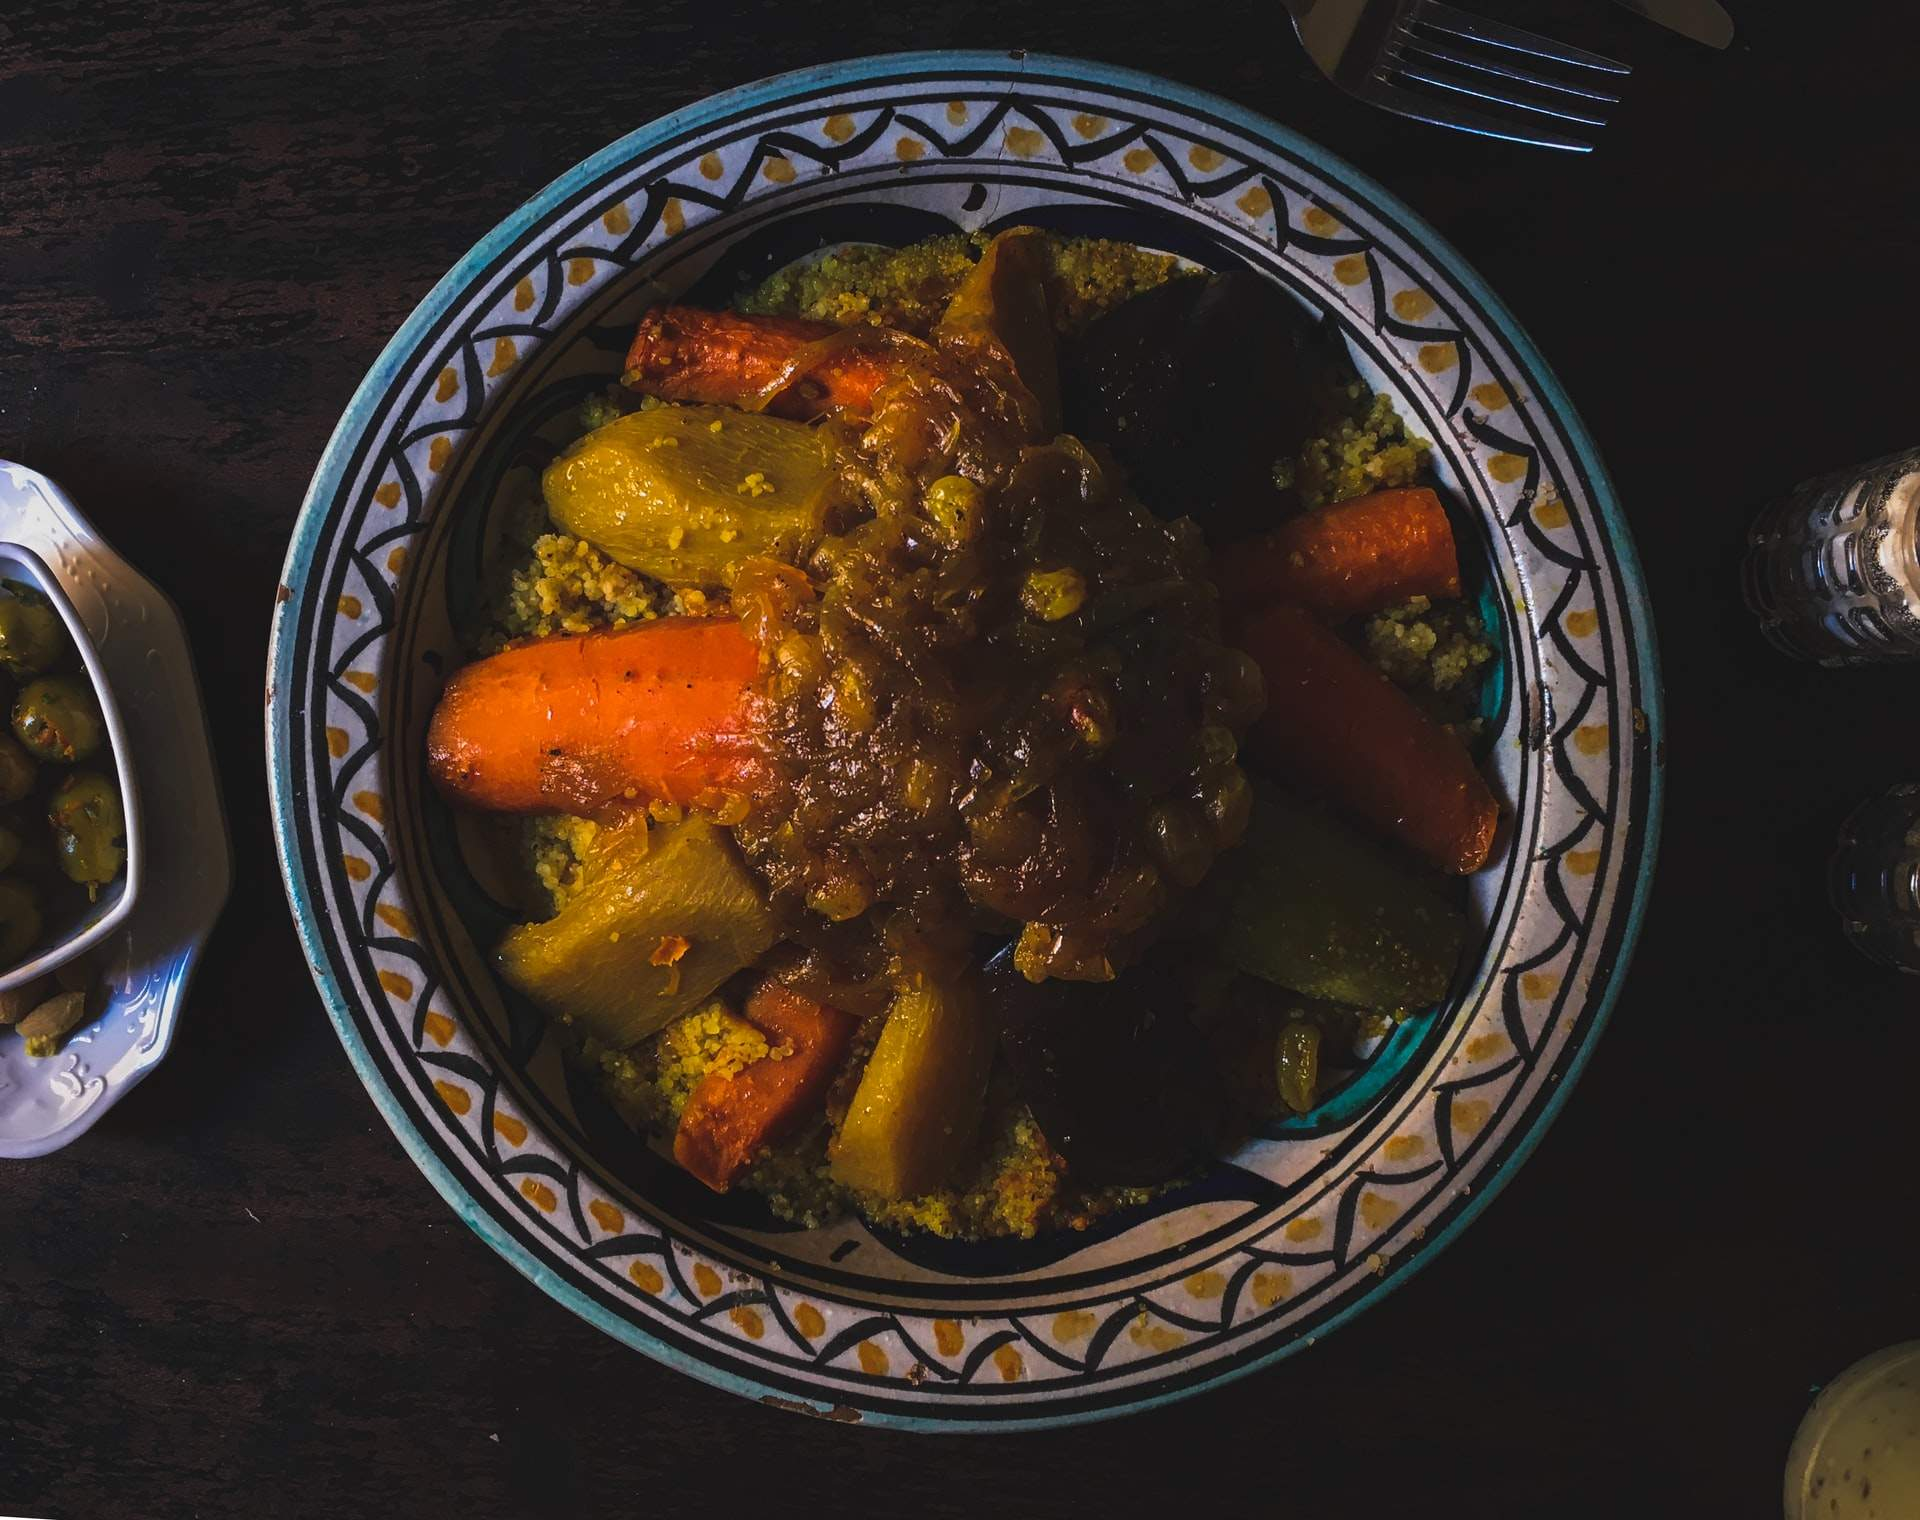 couscous in Morocco, a daily meal